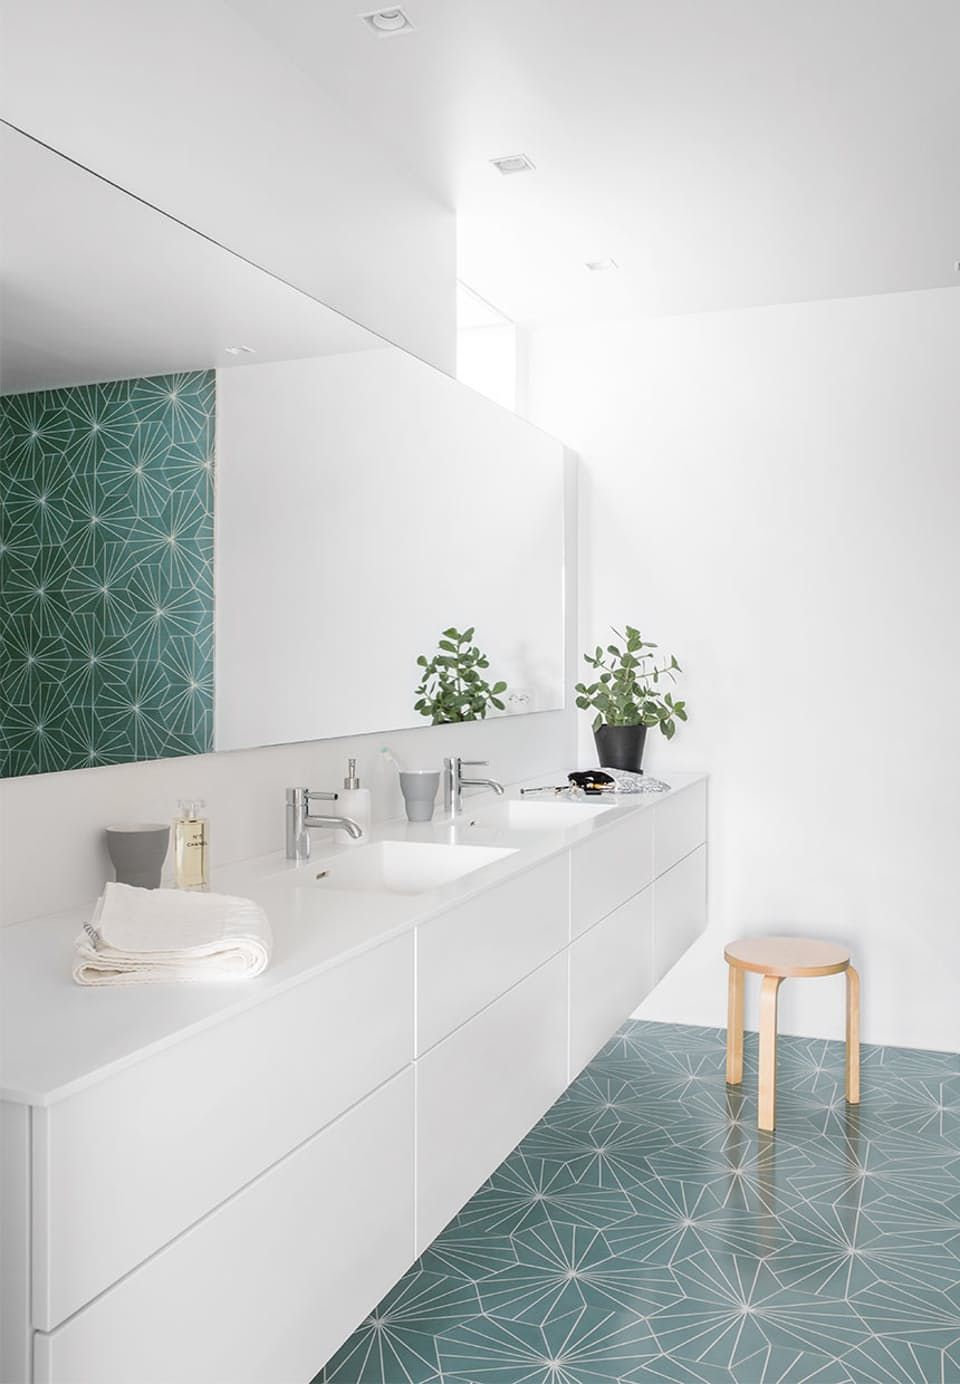 Norsk perle midt i naturen in 2018 | Bathroom | Pinterest | Tile ...